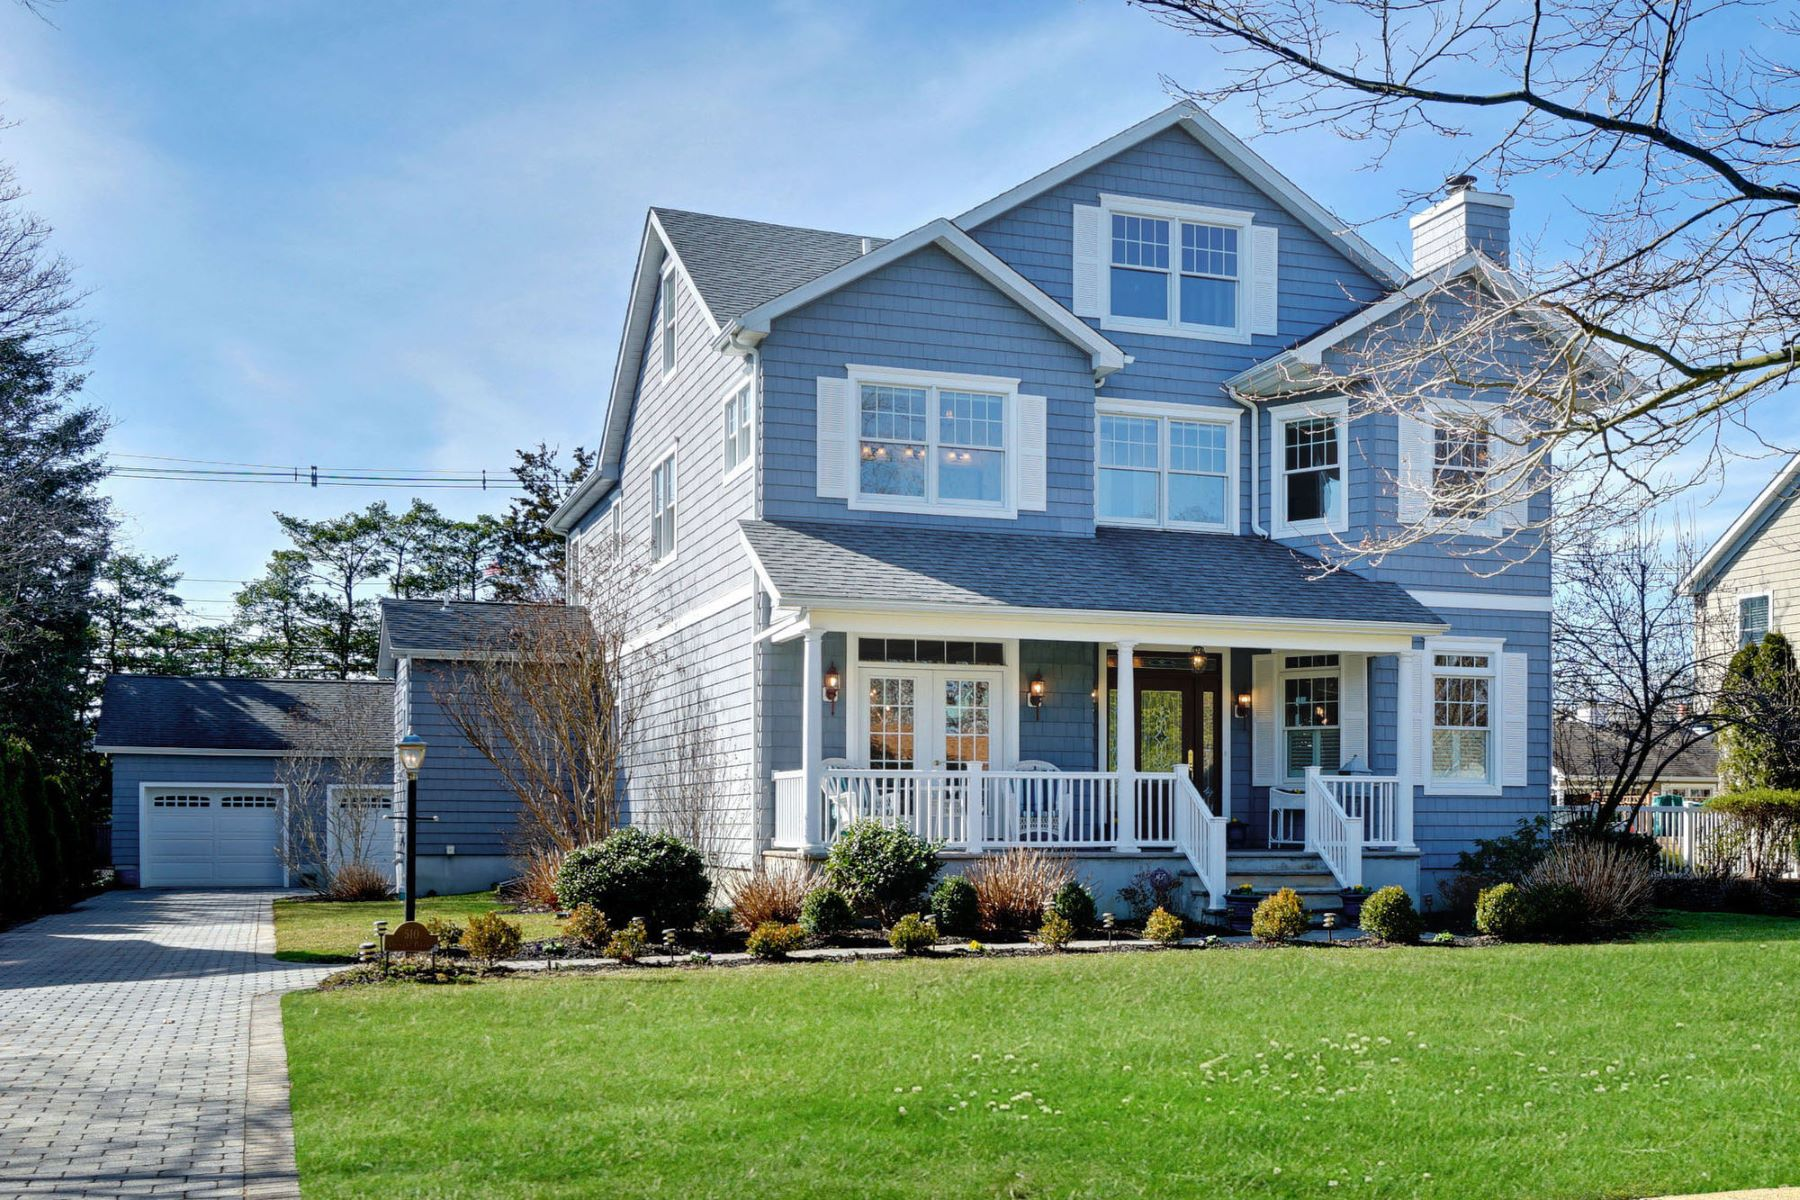 Single Family Homes for Sale at Casual Coastal Living Awaits 510 Crescent Parkway Sea Girt, New Jersey 08750 United States